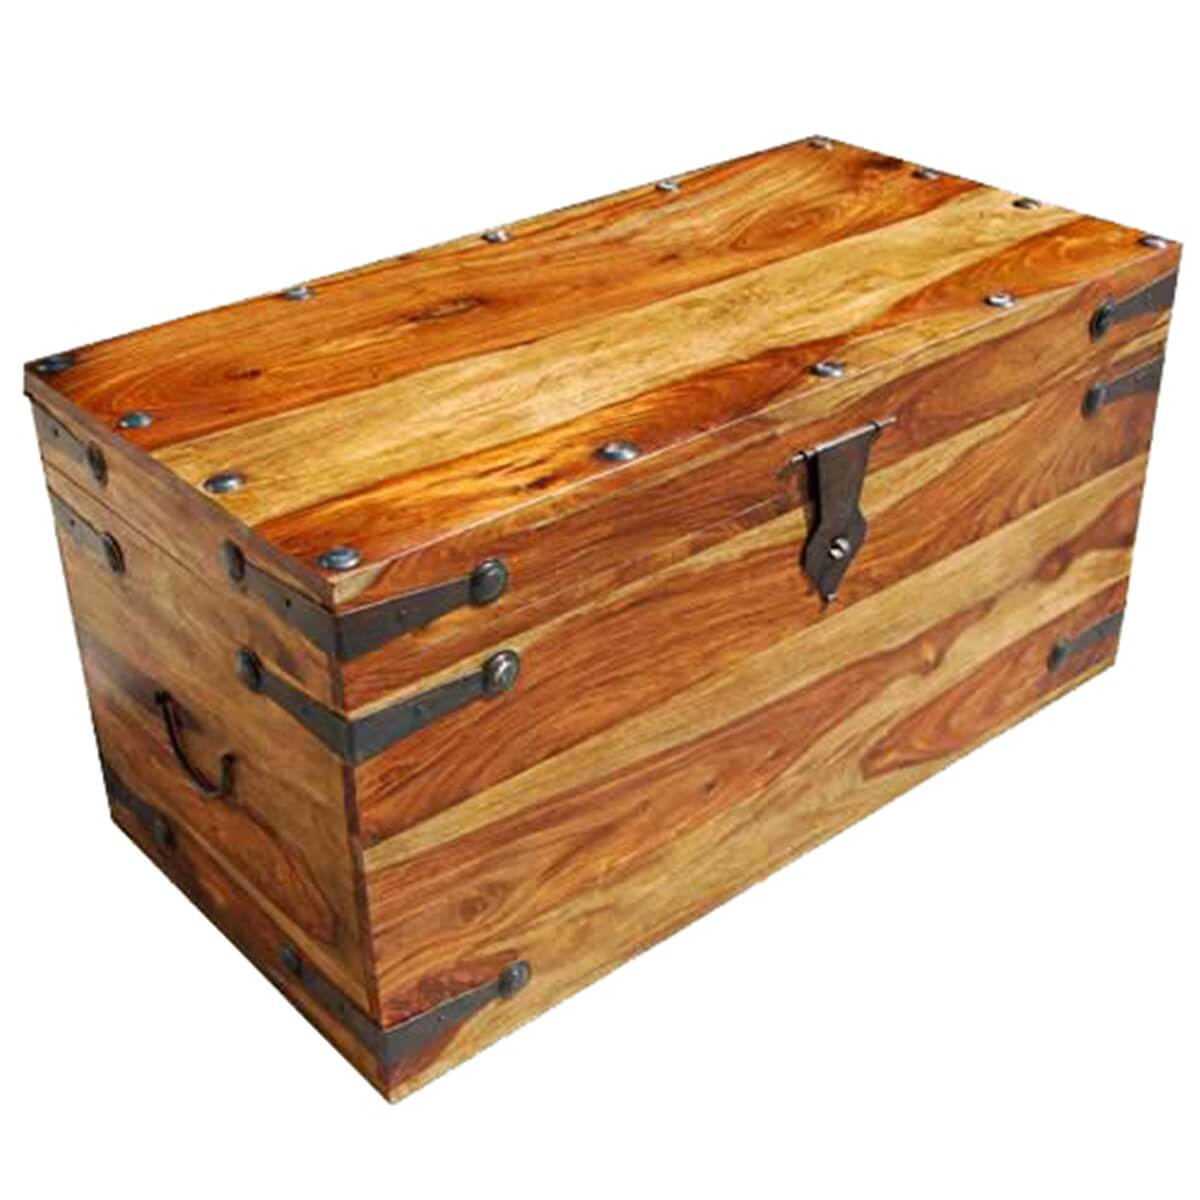 Wood Trunks And Chests ~ Solid wood dallas trunk coffee table with wrought iron